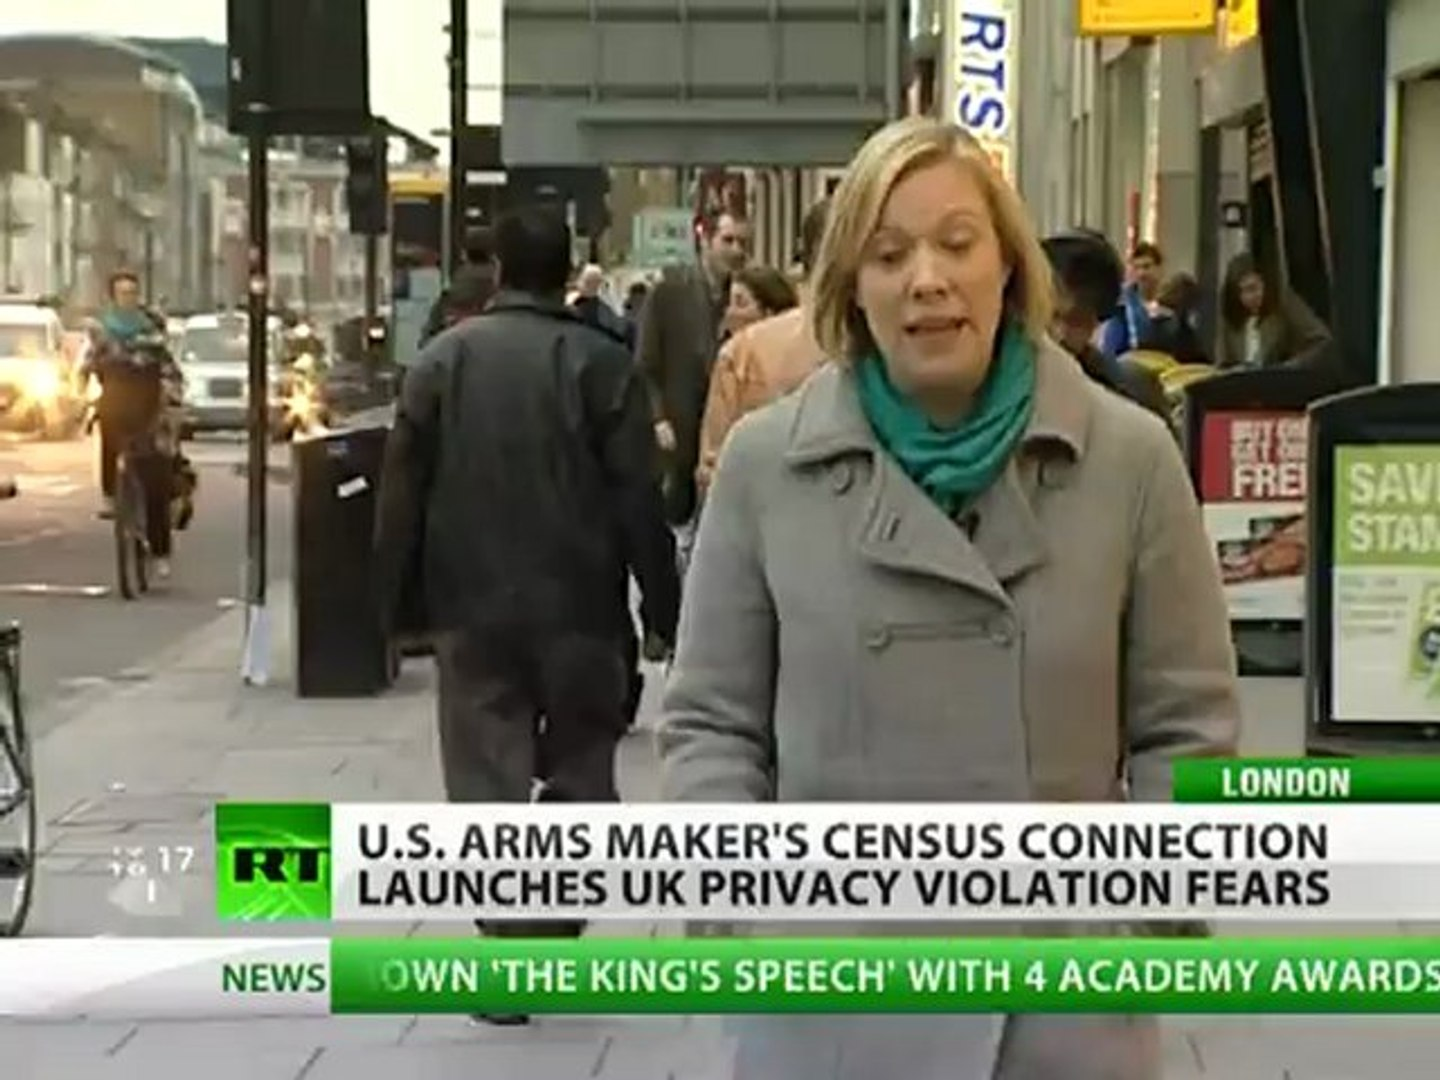 Census in Crosshairs: US arms maker link launches UK privacy fears